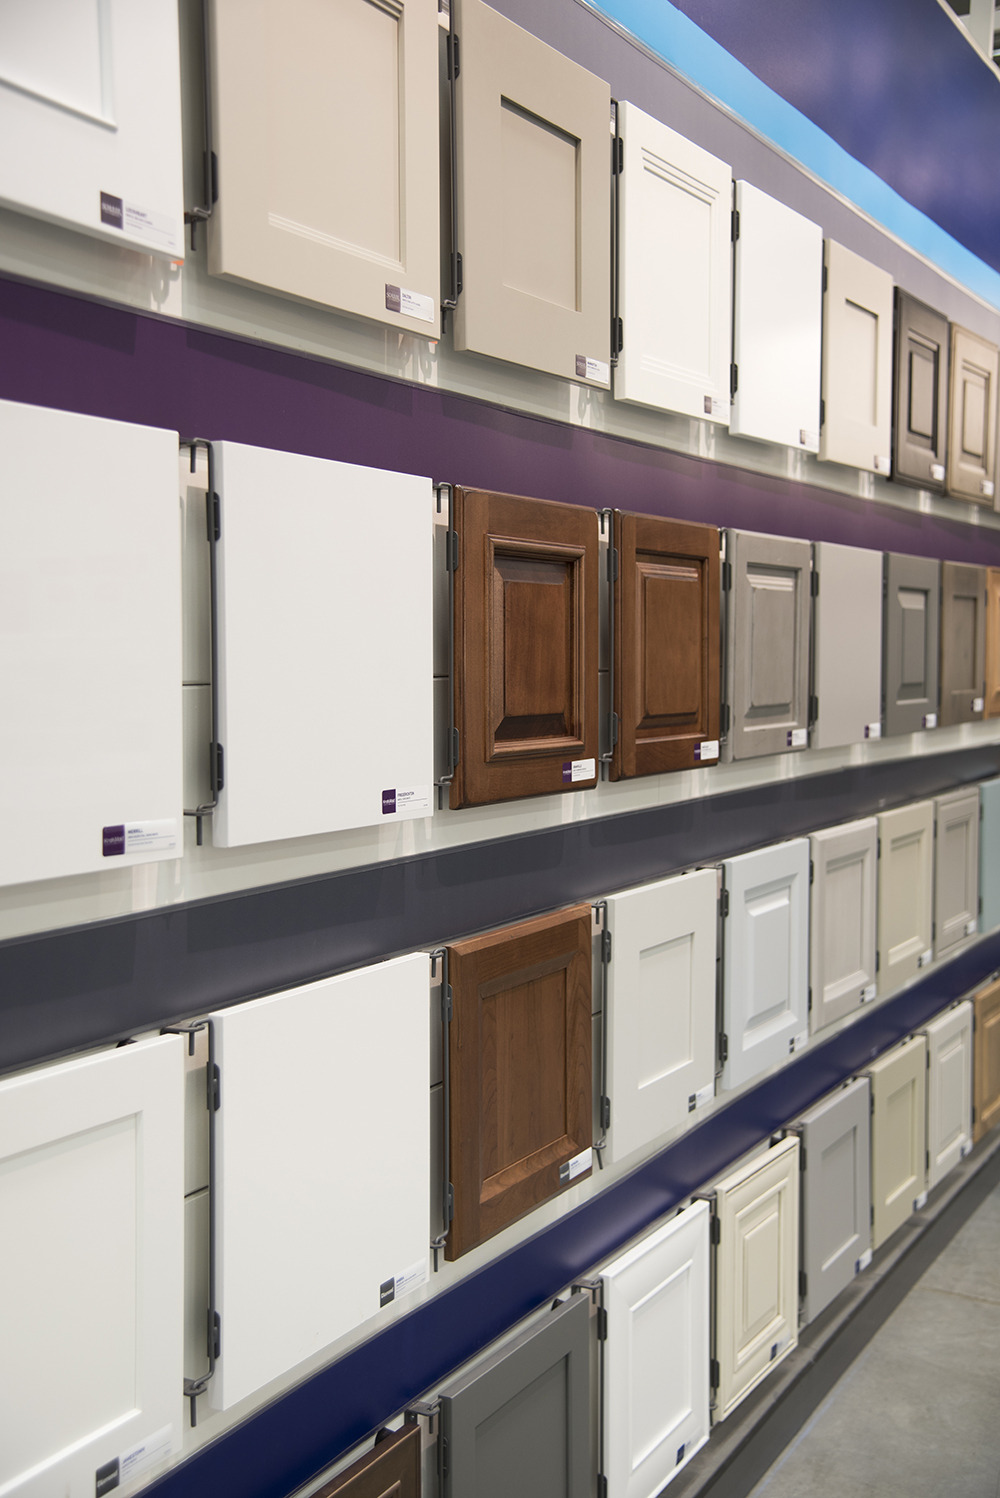 Kitchen Cabinet Doors Lowes Luxury My Cabinetry Selection & Design Process at Lowe S Room for